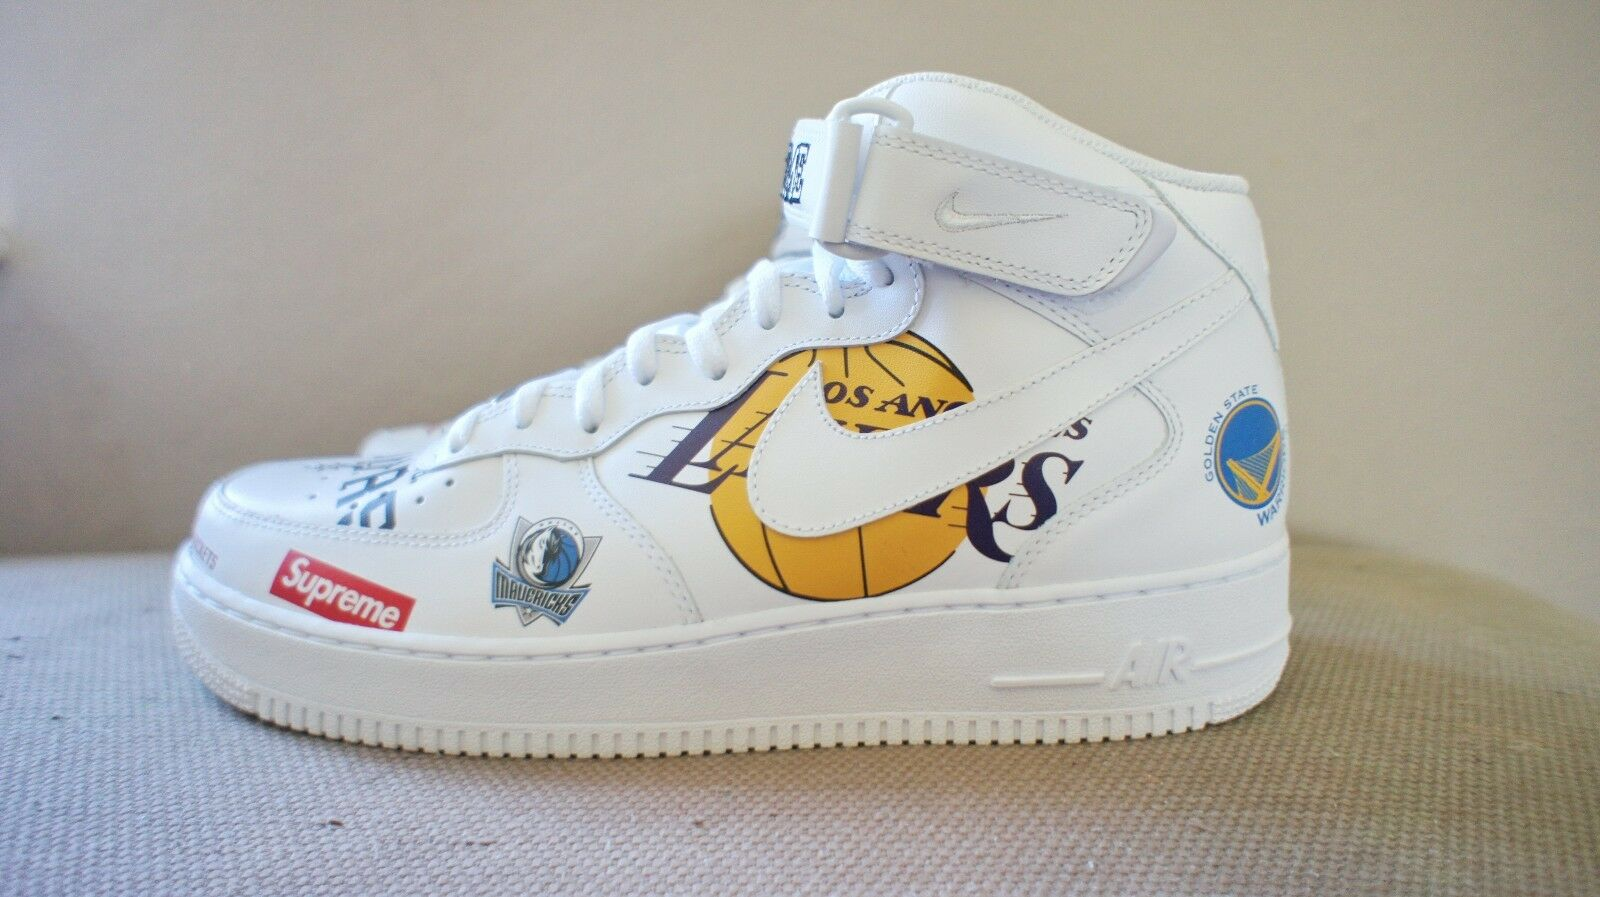 New DS Nike x Supreme x NBA Air Force Force Force 1 Mid '07 blanc Hommes sz 10.5 11 11.5 or 12 98f0c5